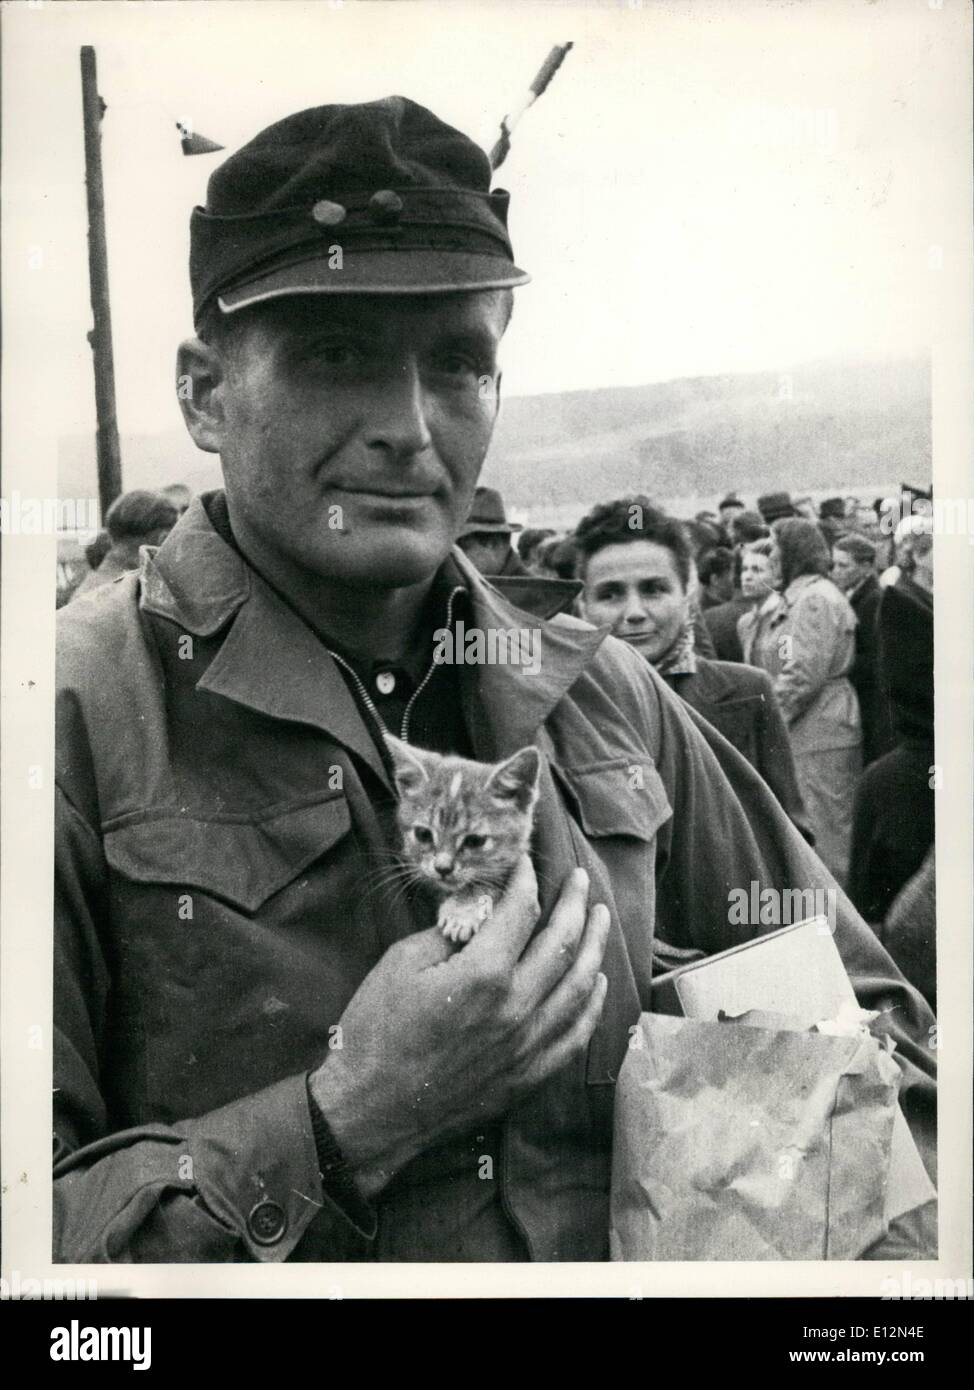 Feb. 24, 2012 - Returnees. A small cat from Stalingrad Camp brought along to Germany. In spite of barbed wire, hunger and cold, our returnees never forgot loving the animals. Friedrich Rath from Cologne took this small cat with himself over the borderline to Germany. - Stock Image